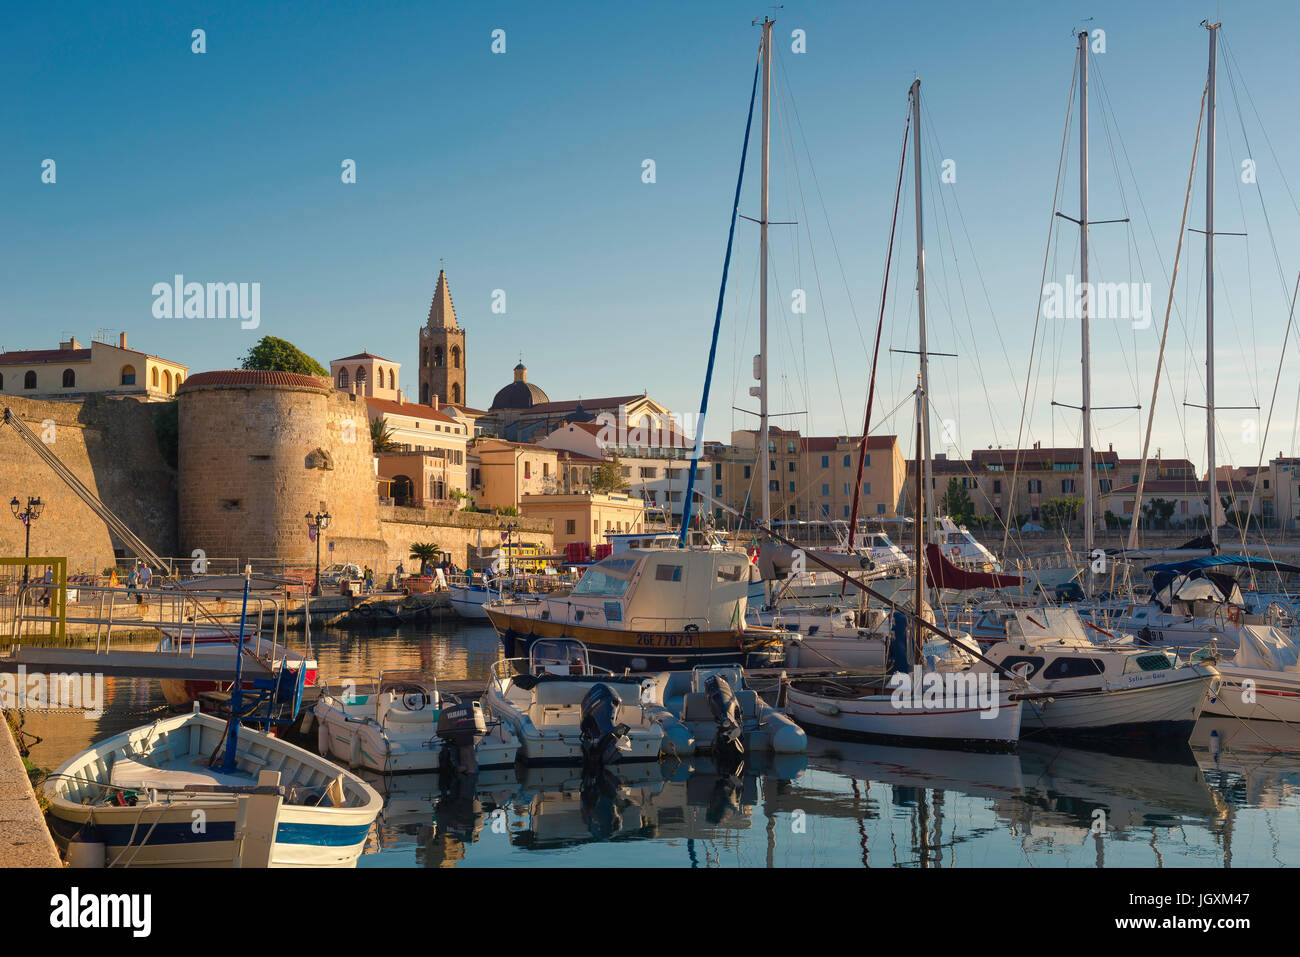 Sardinia port harbour, view of the Alghero skyline with the harbor and port area in the foreground, Sardinia, Italy. - Stock Image